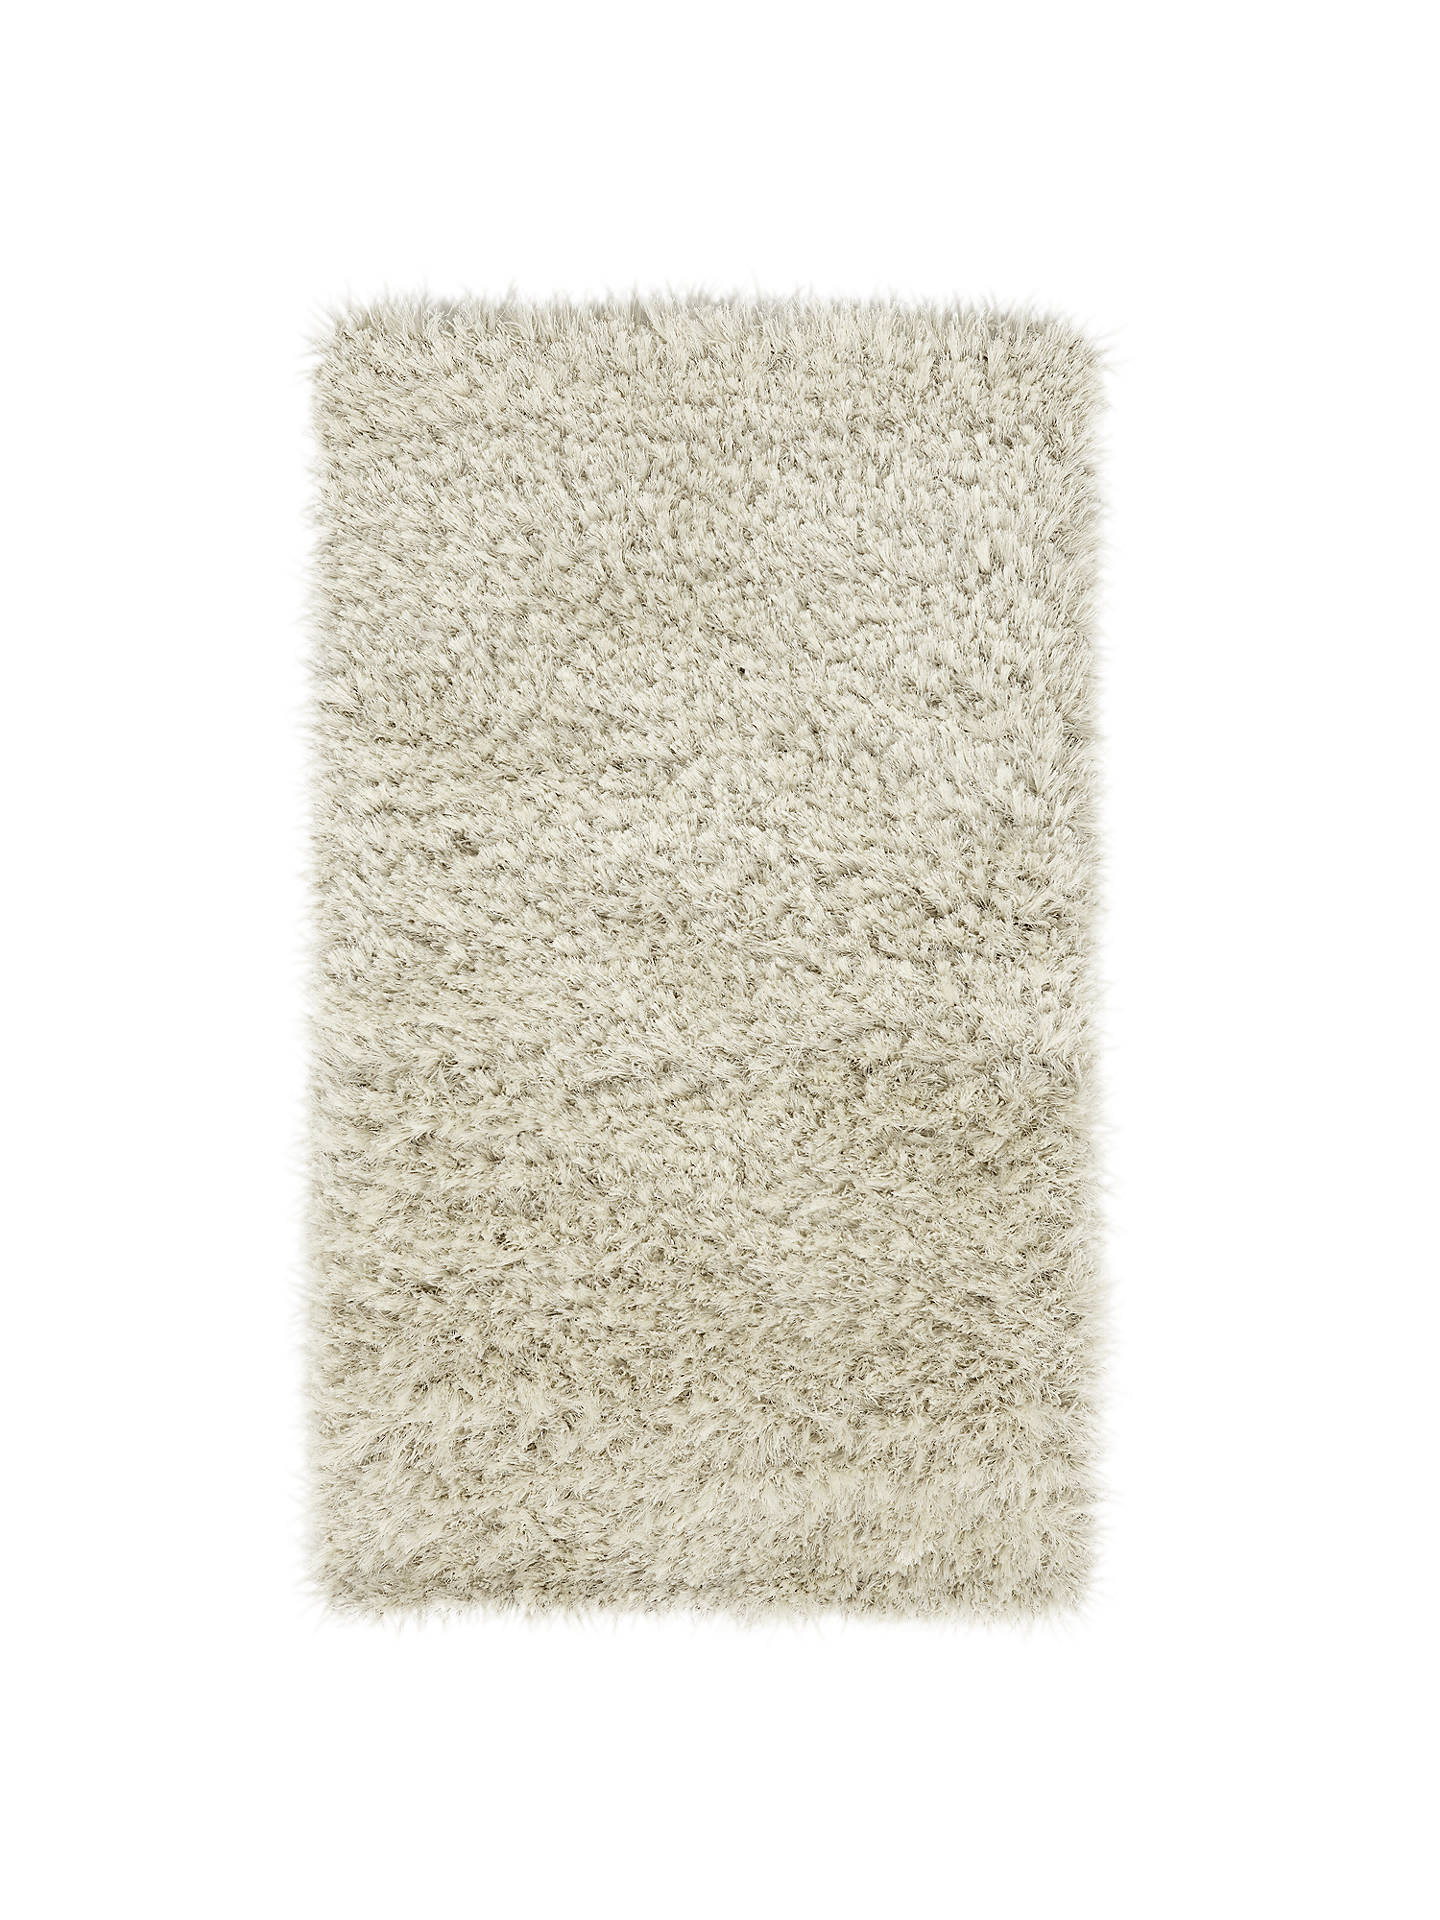 John Lewis Partners Rhapsody Shaggy Rug Ivory L290 X W200cm Online At Johnlewis